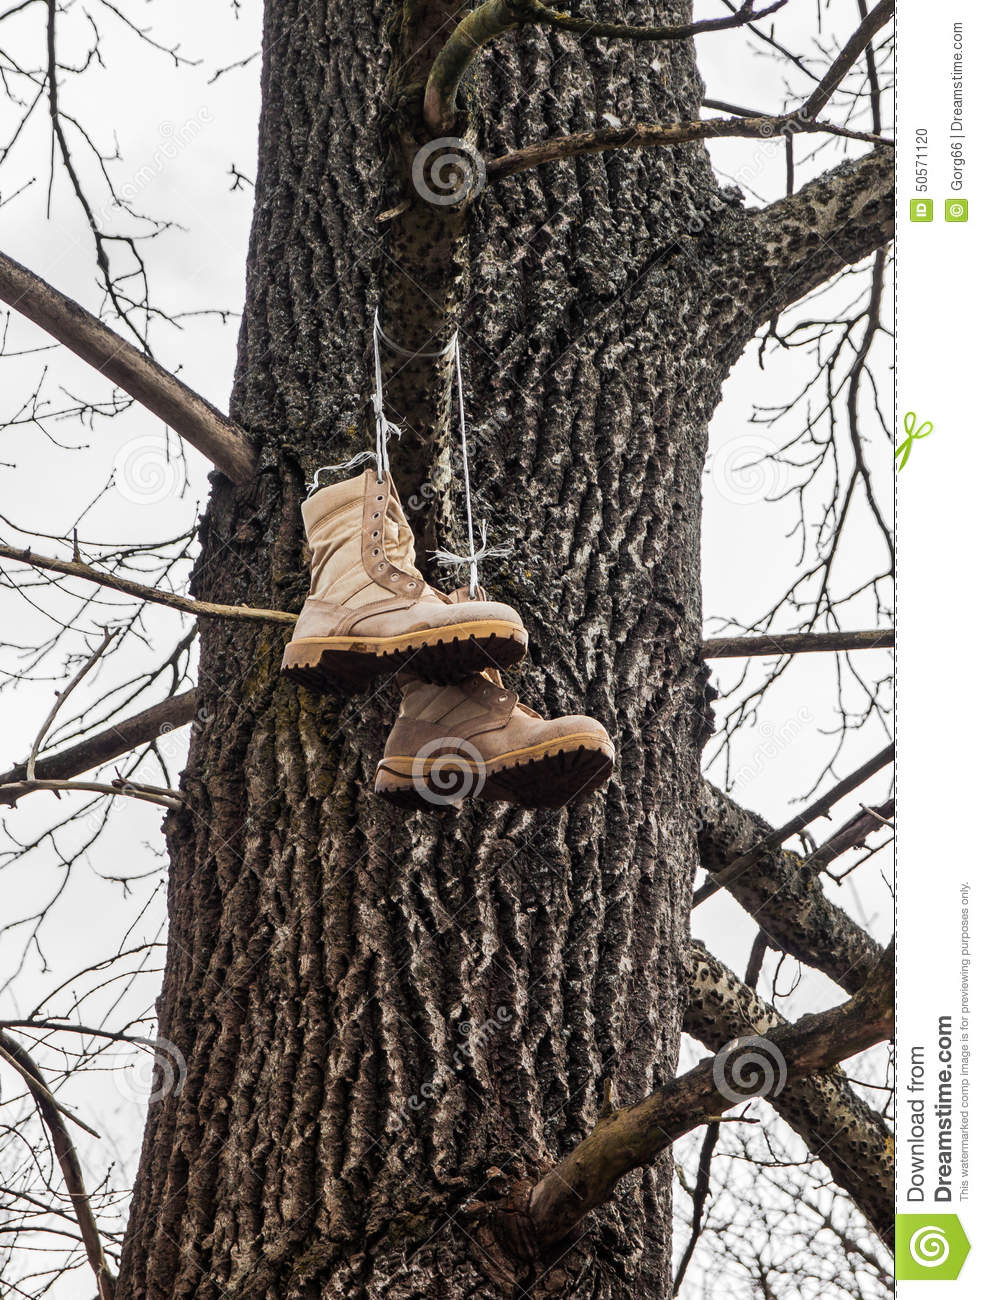 Vagabond S Boots Hanging On A Tree Stock Photo Image